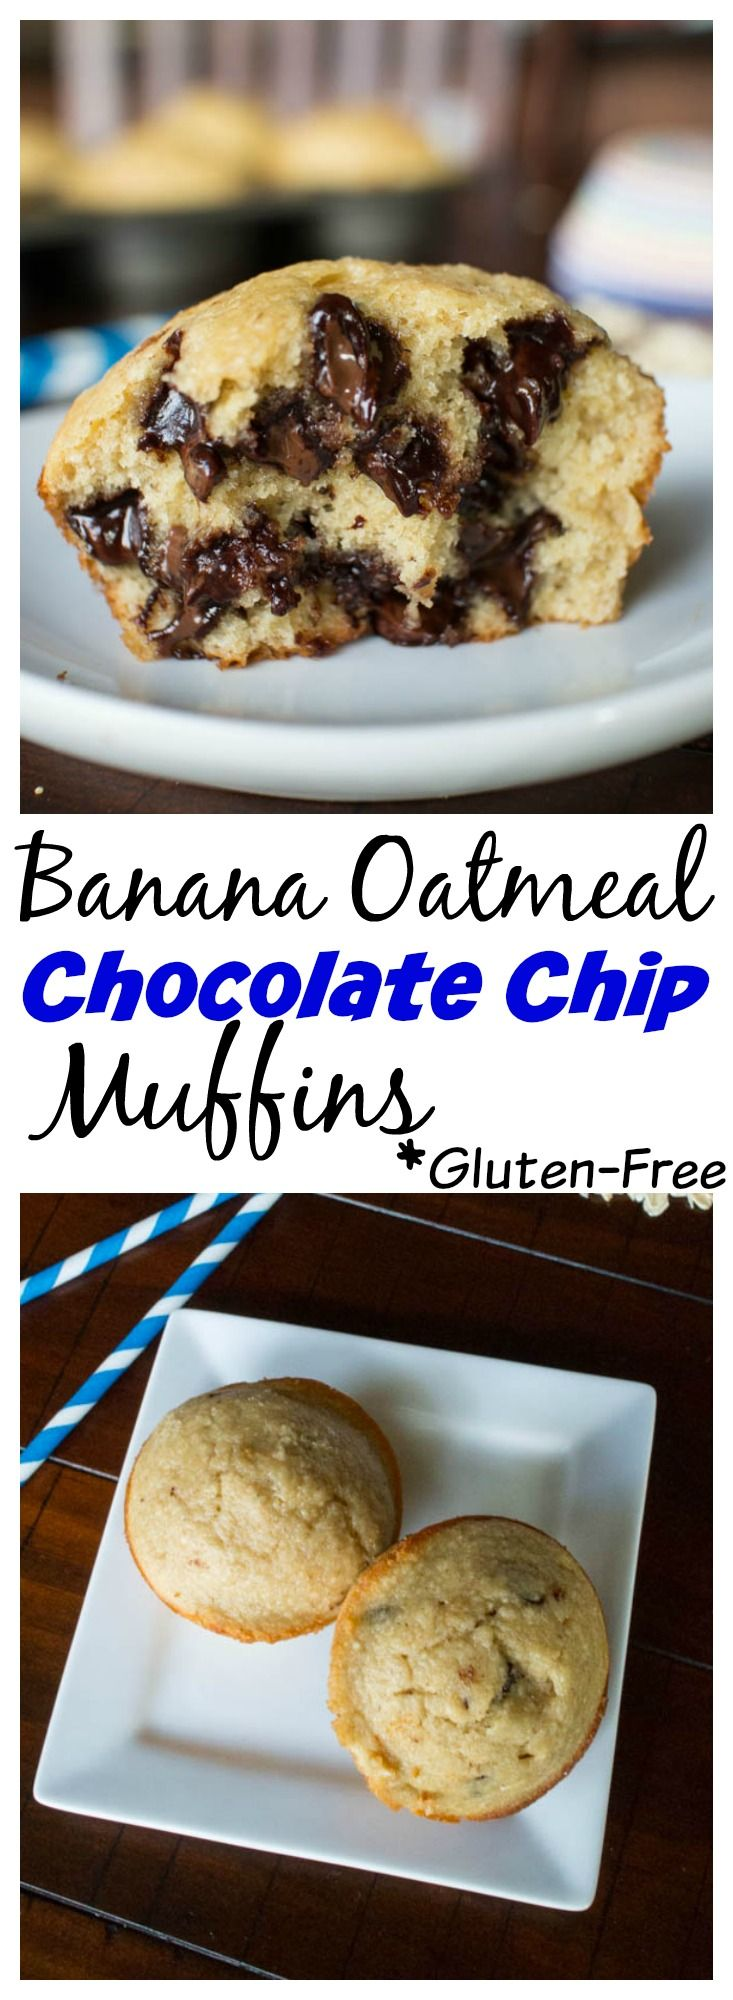 Quick and easy gluten free banana muffins you can make in the blender. No oil either! Banana Oatmeal Chocolate Chip Muffin Recipe